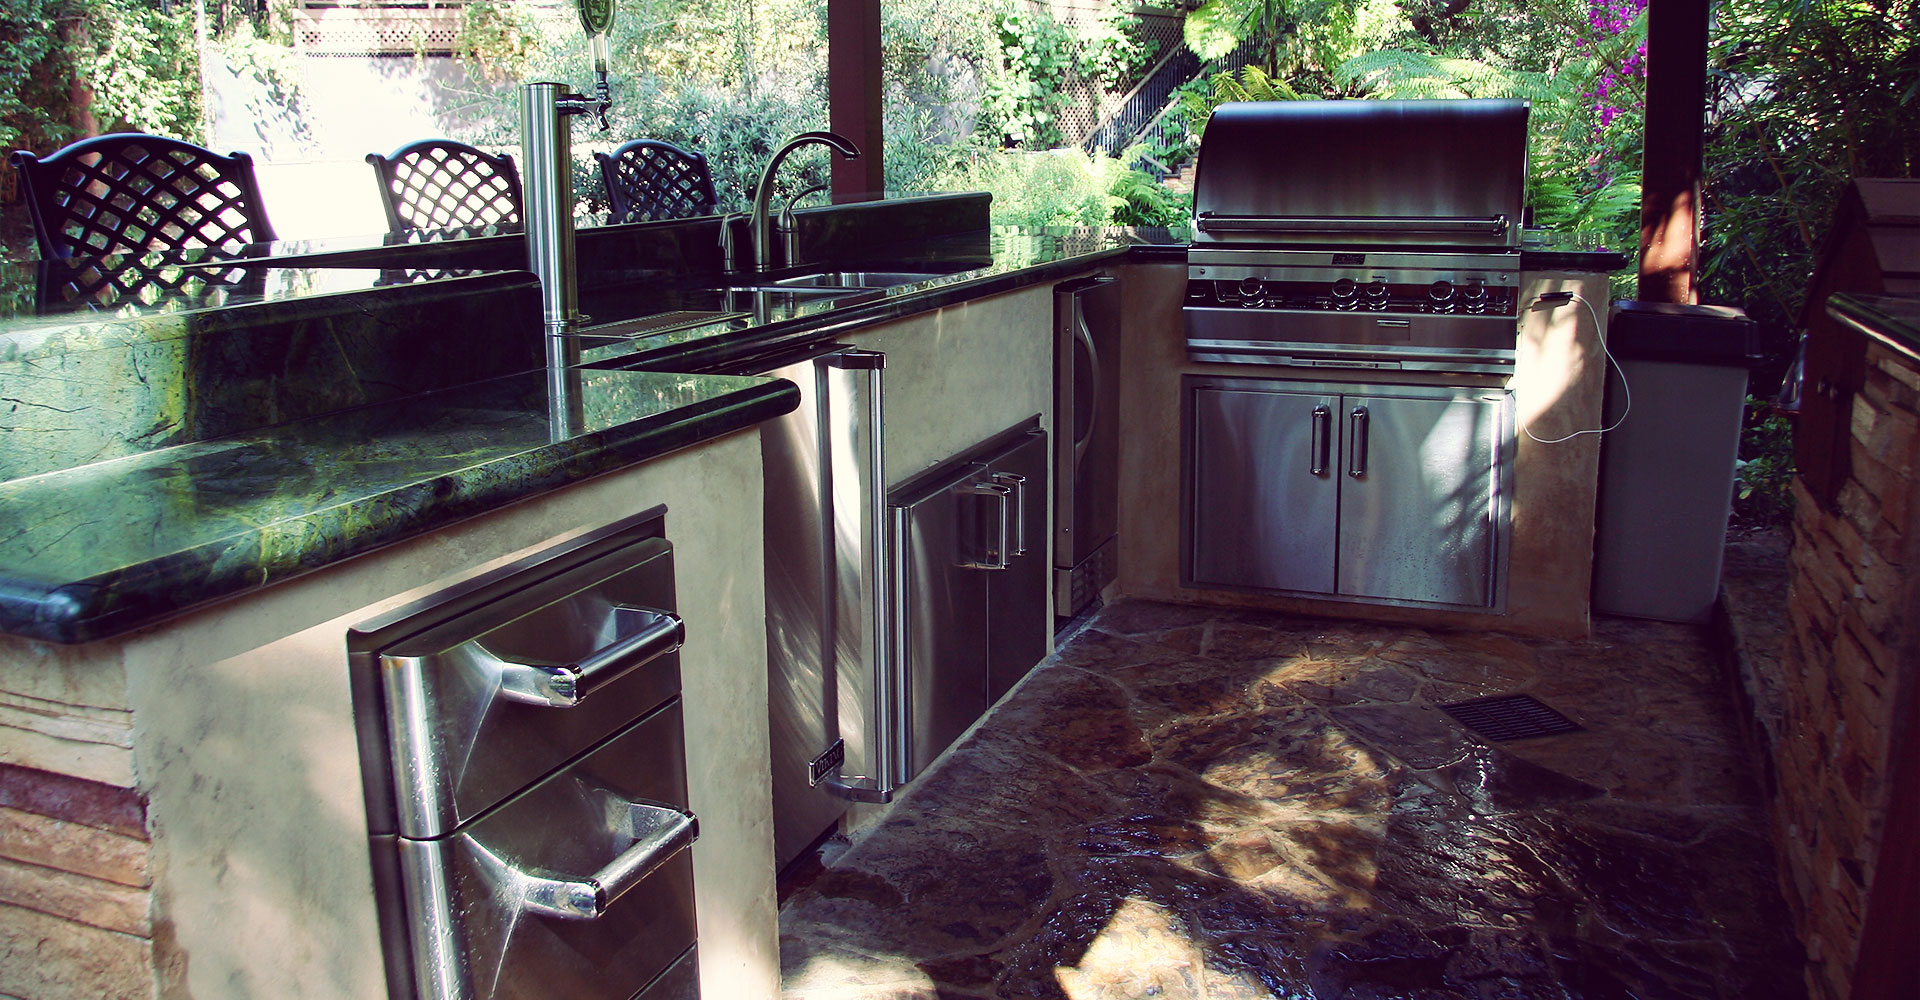 Outdoor kitchens grilling sherman oaks landscape designer for Outdoor kitchen without grill